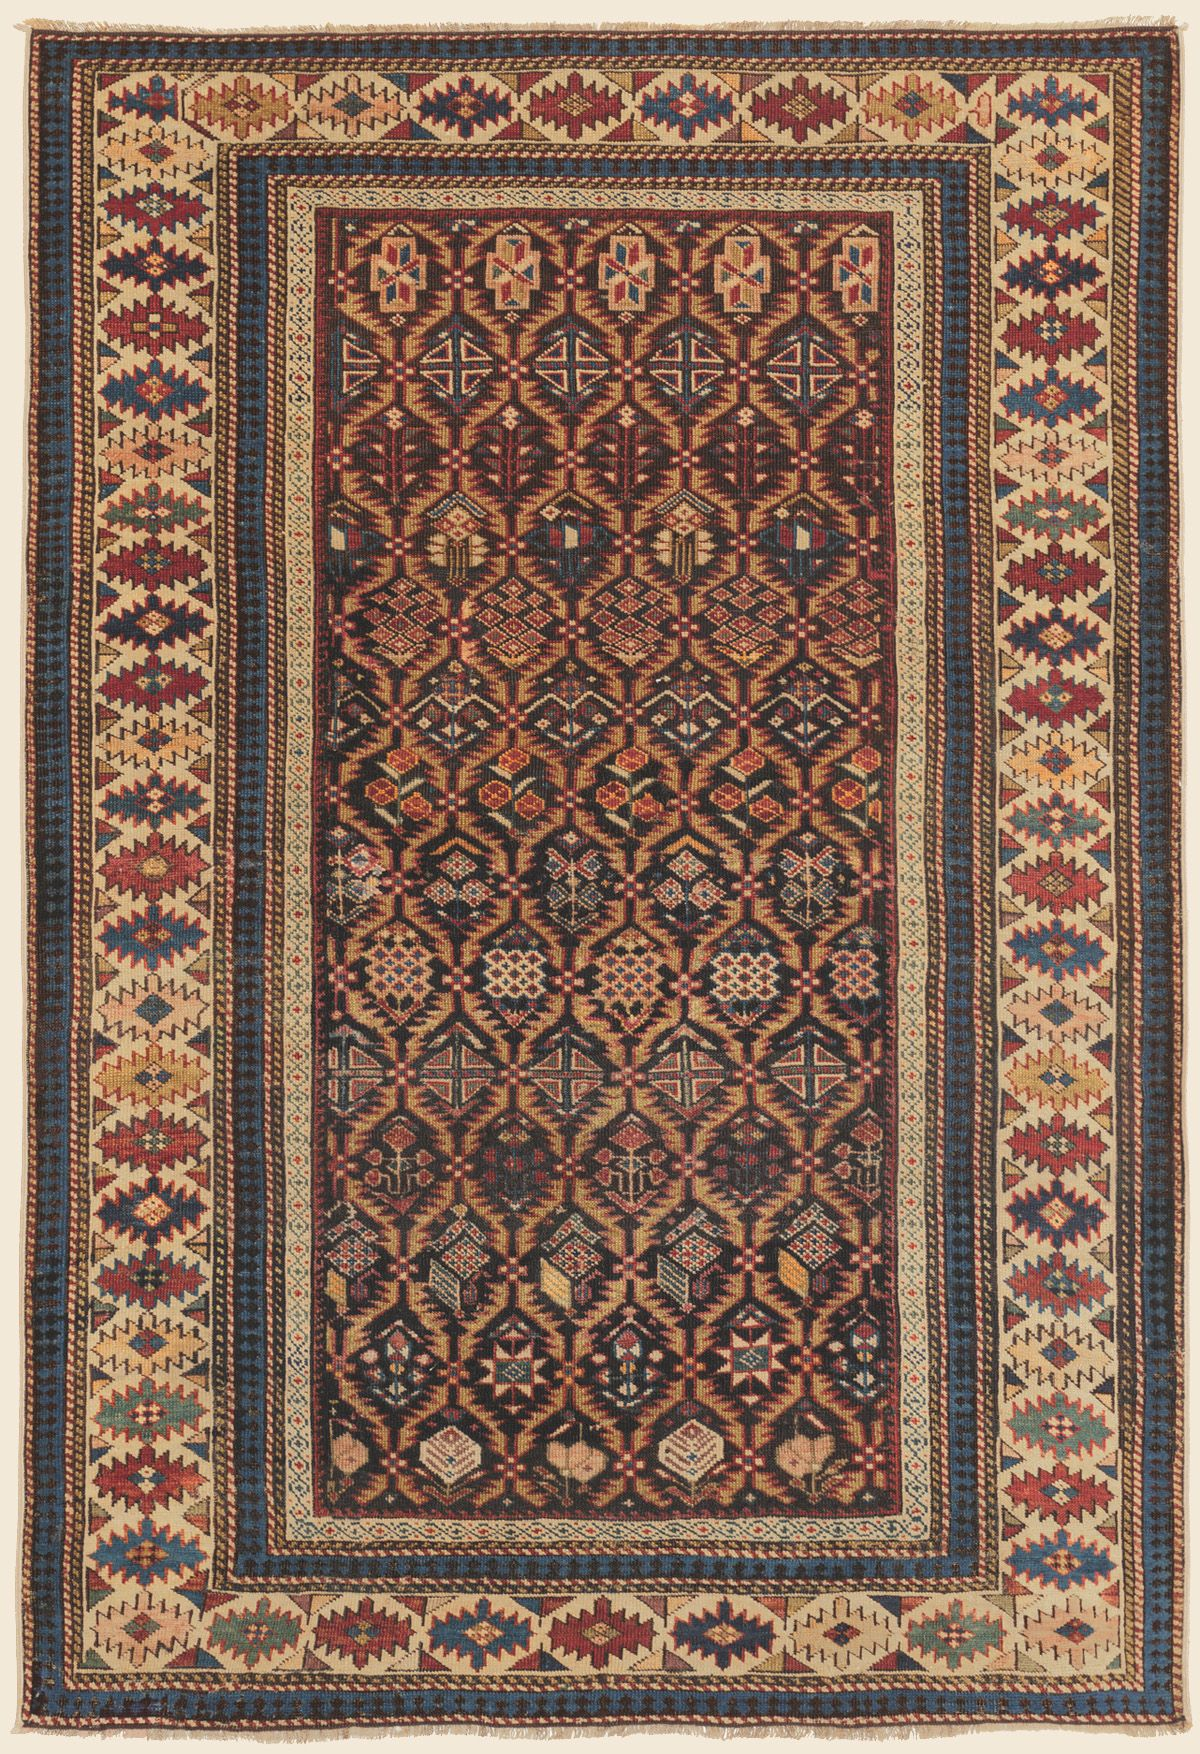 Shirvan 3 8 X 5 4 Late 19th Century Price 2 800 Southeast Caucasian Antique Rug Claremont Rug Company Rugs Claremont Rug Company Antique Rugs